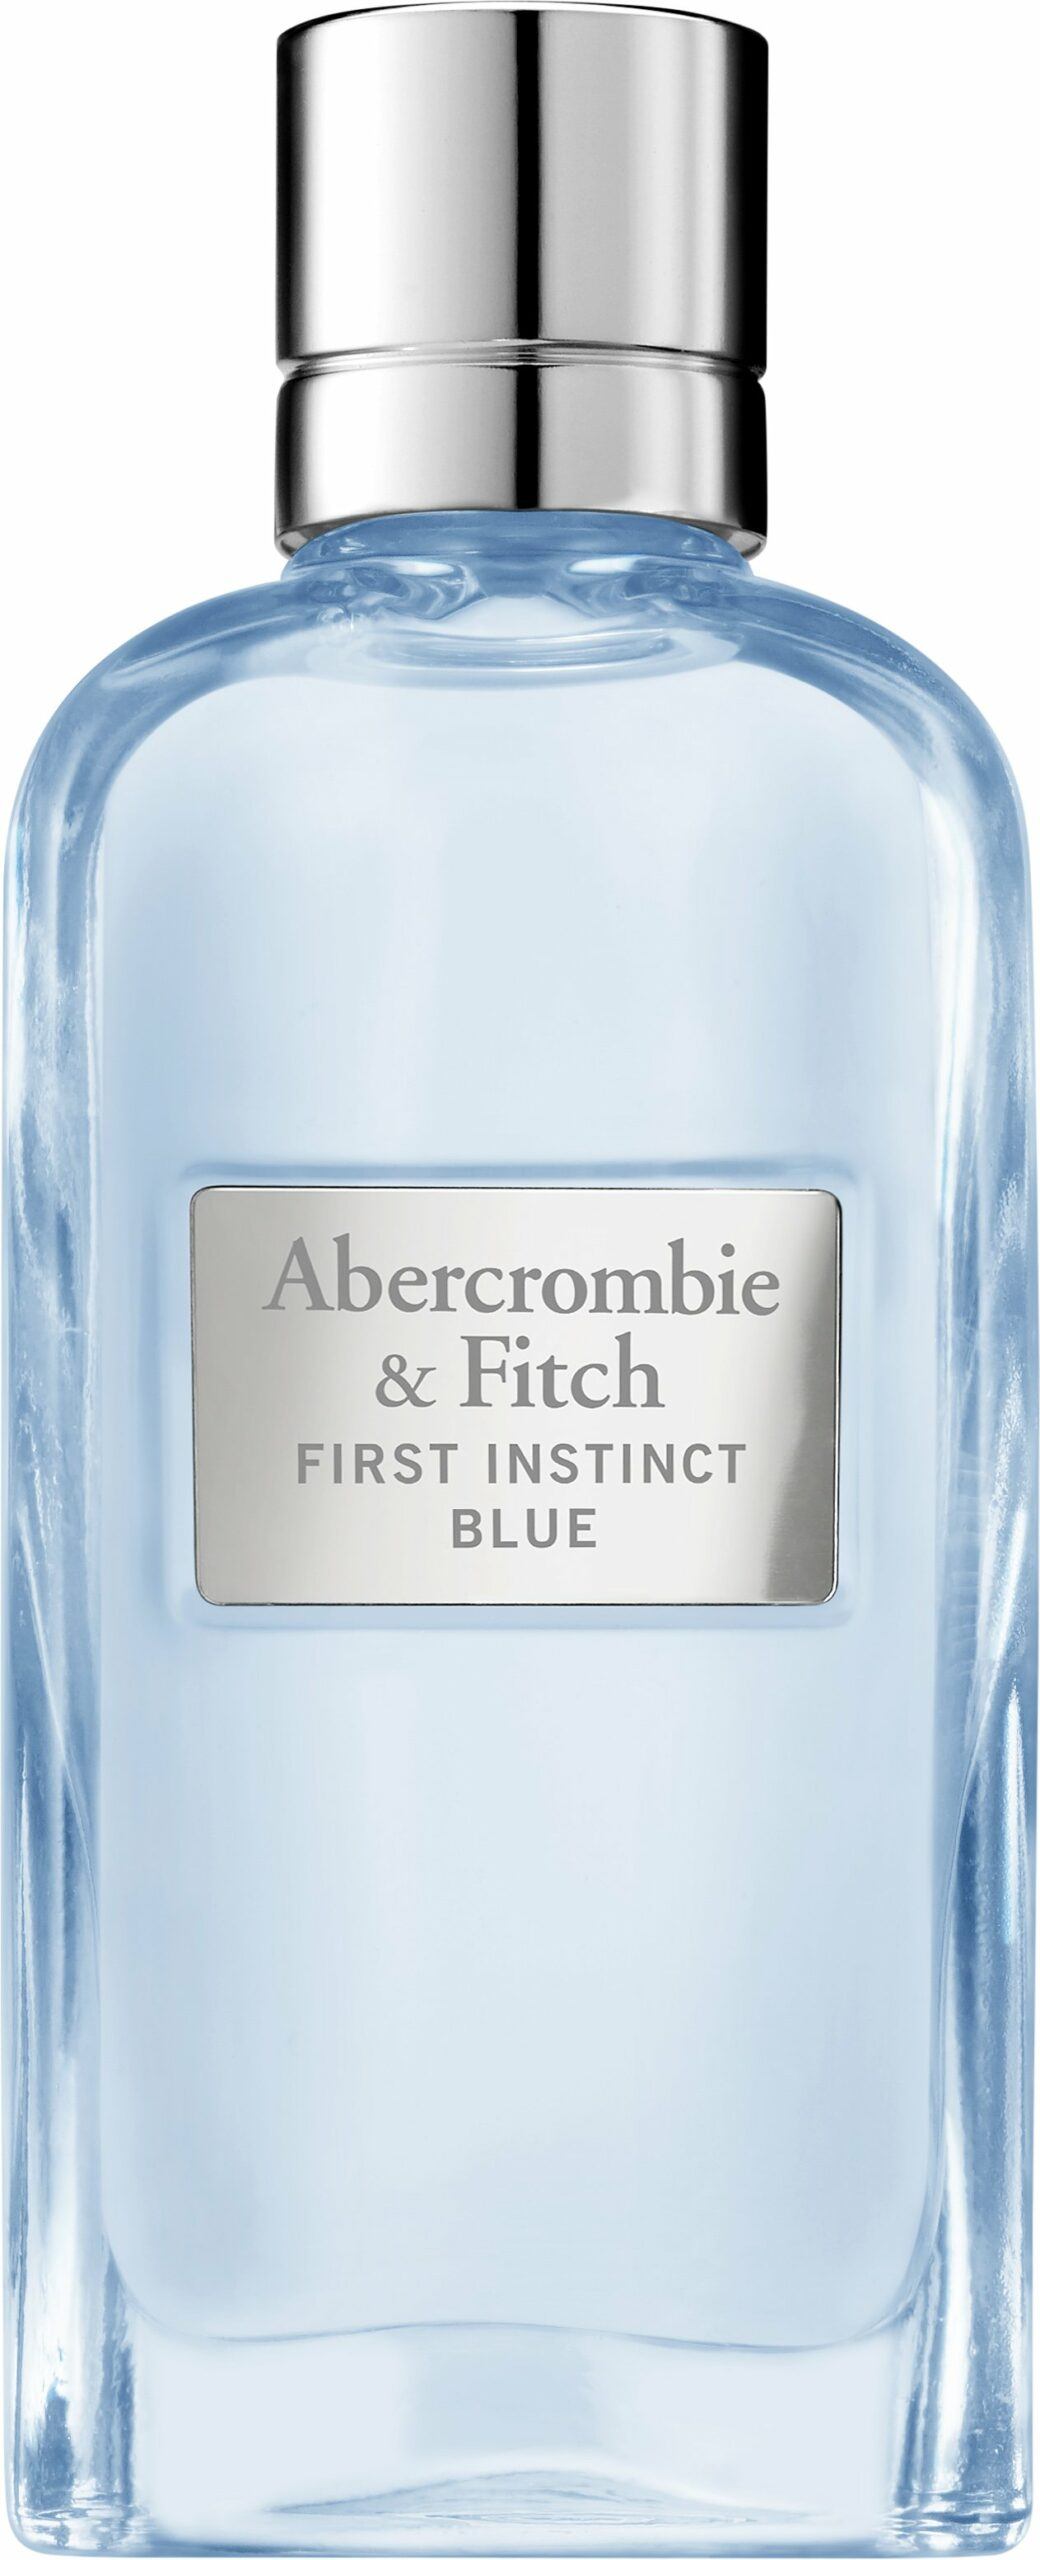 Abercrombie & Fitch - First Instinct Blue for Her EDP 50 ml